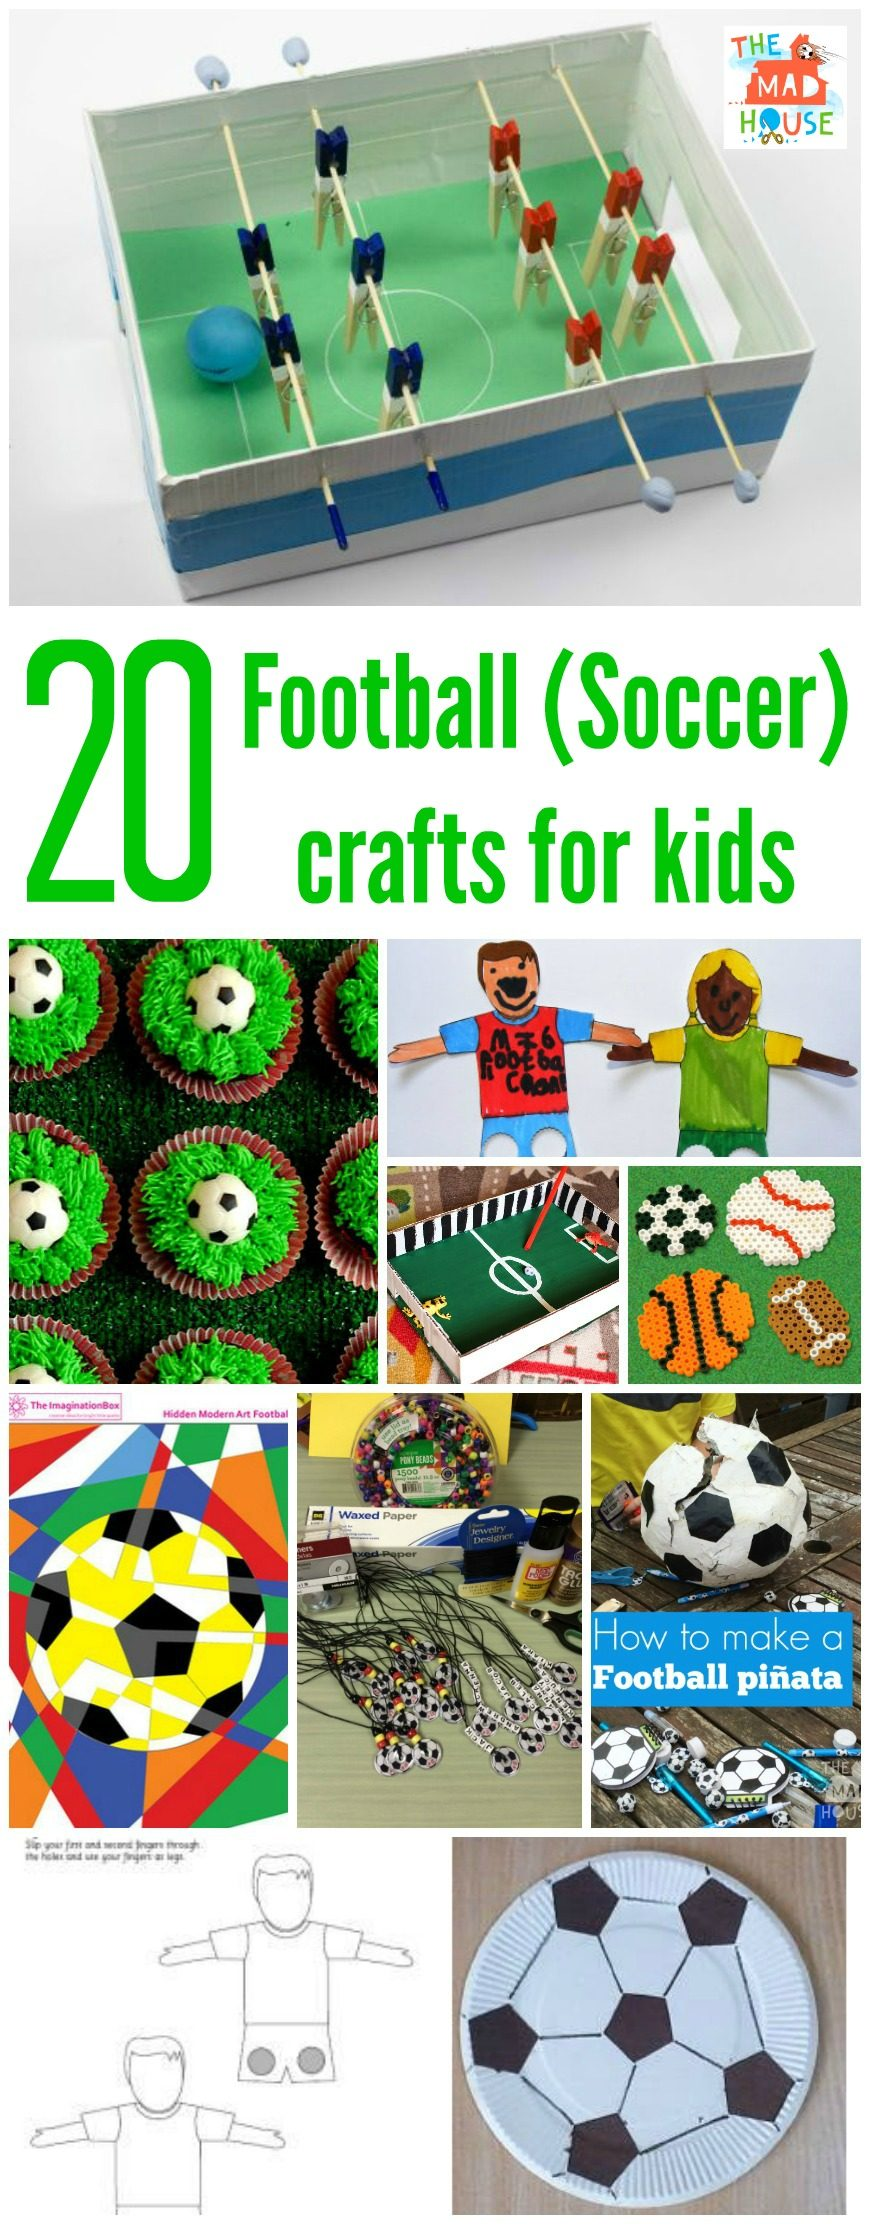 Football Crafts Or Soccer Crafts Mum In The Madhouse